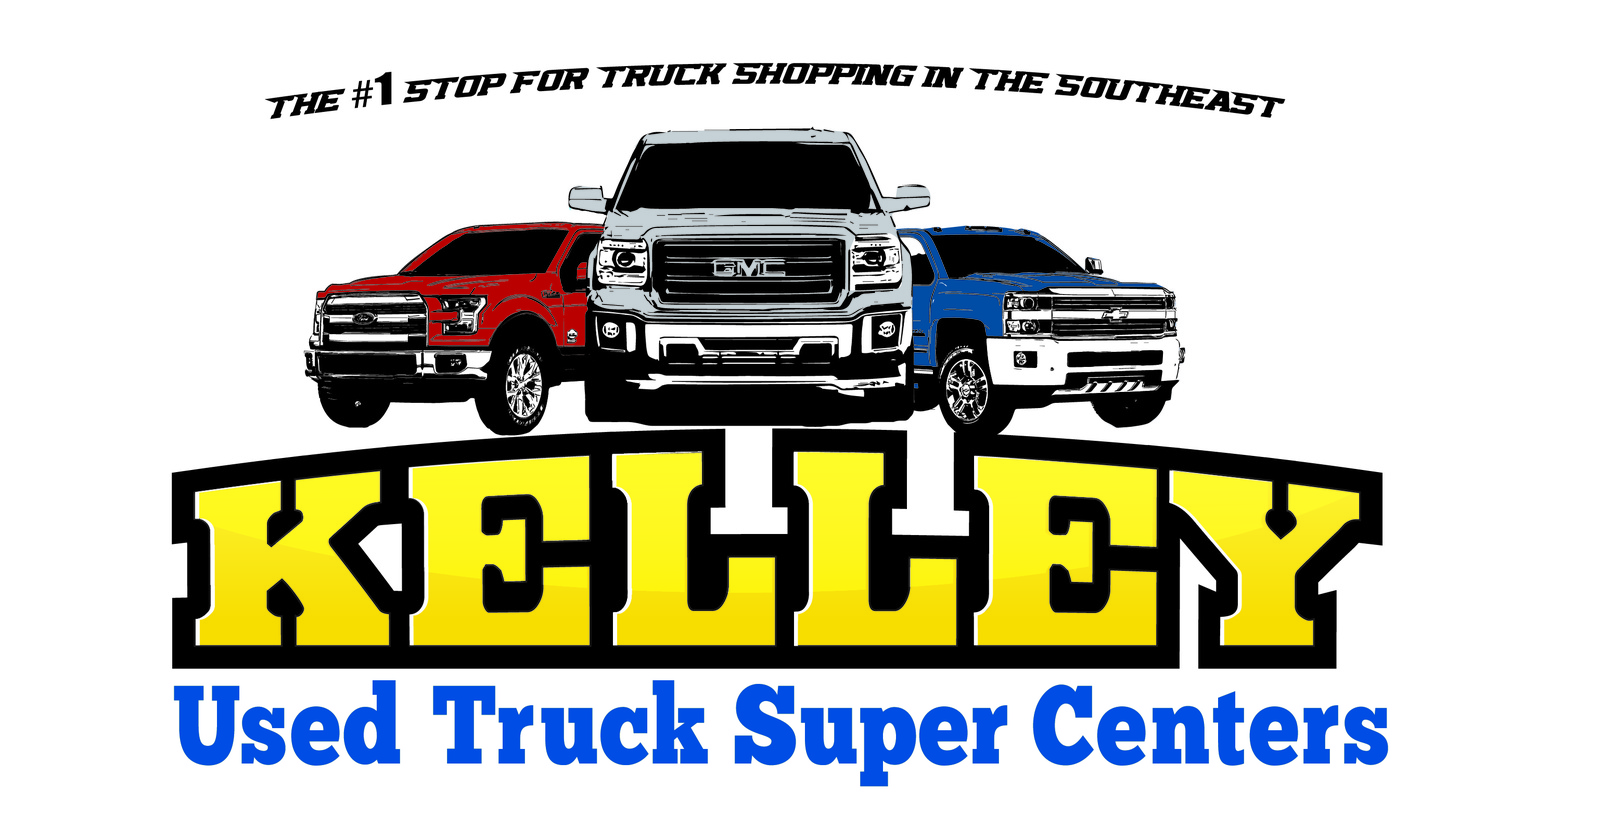 Kelley Used Truck Super Centers - Lakeland, FL: Read Consumer ...